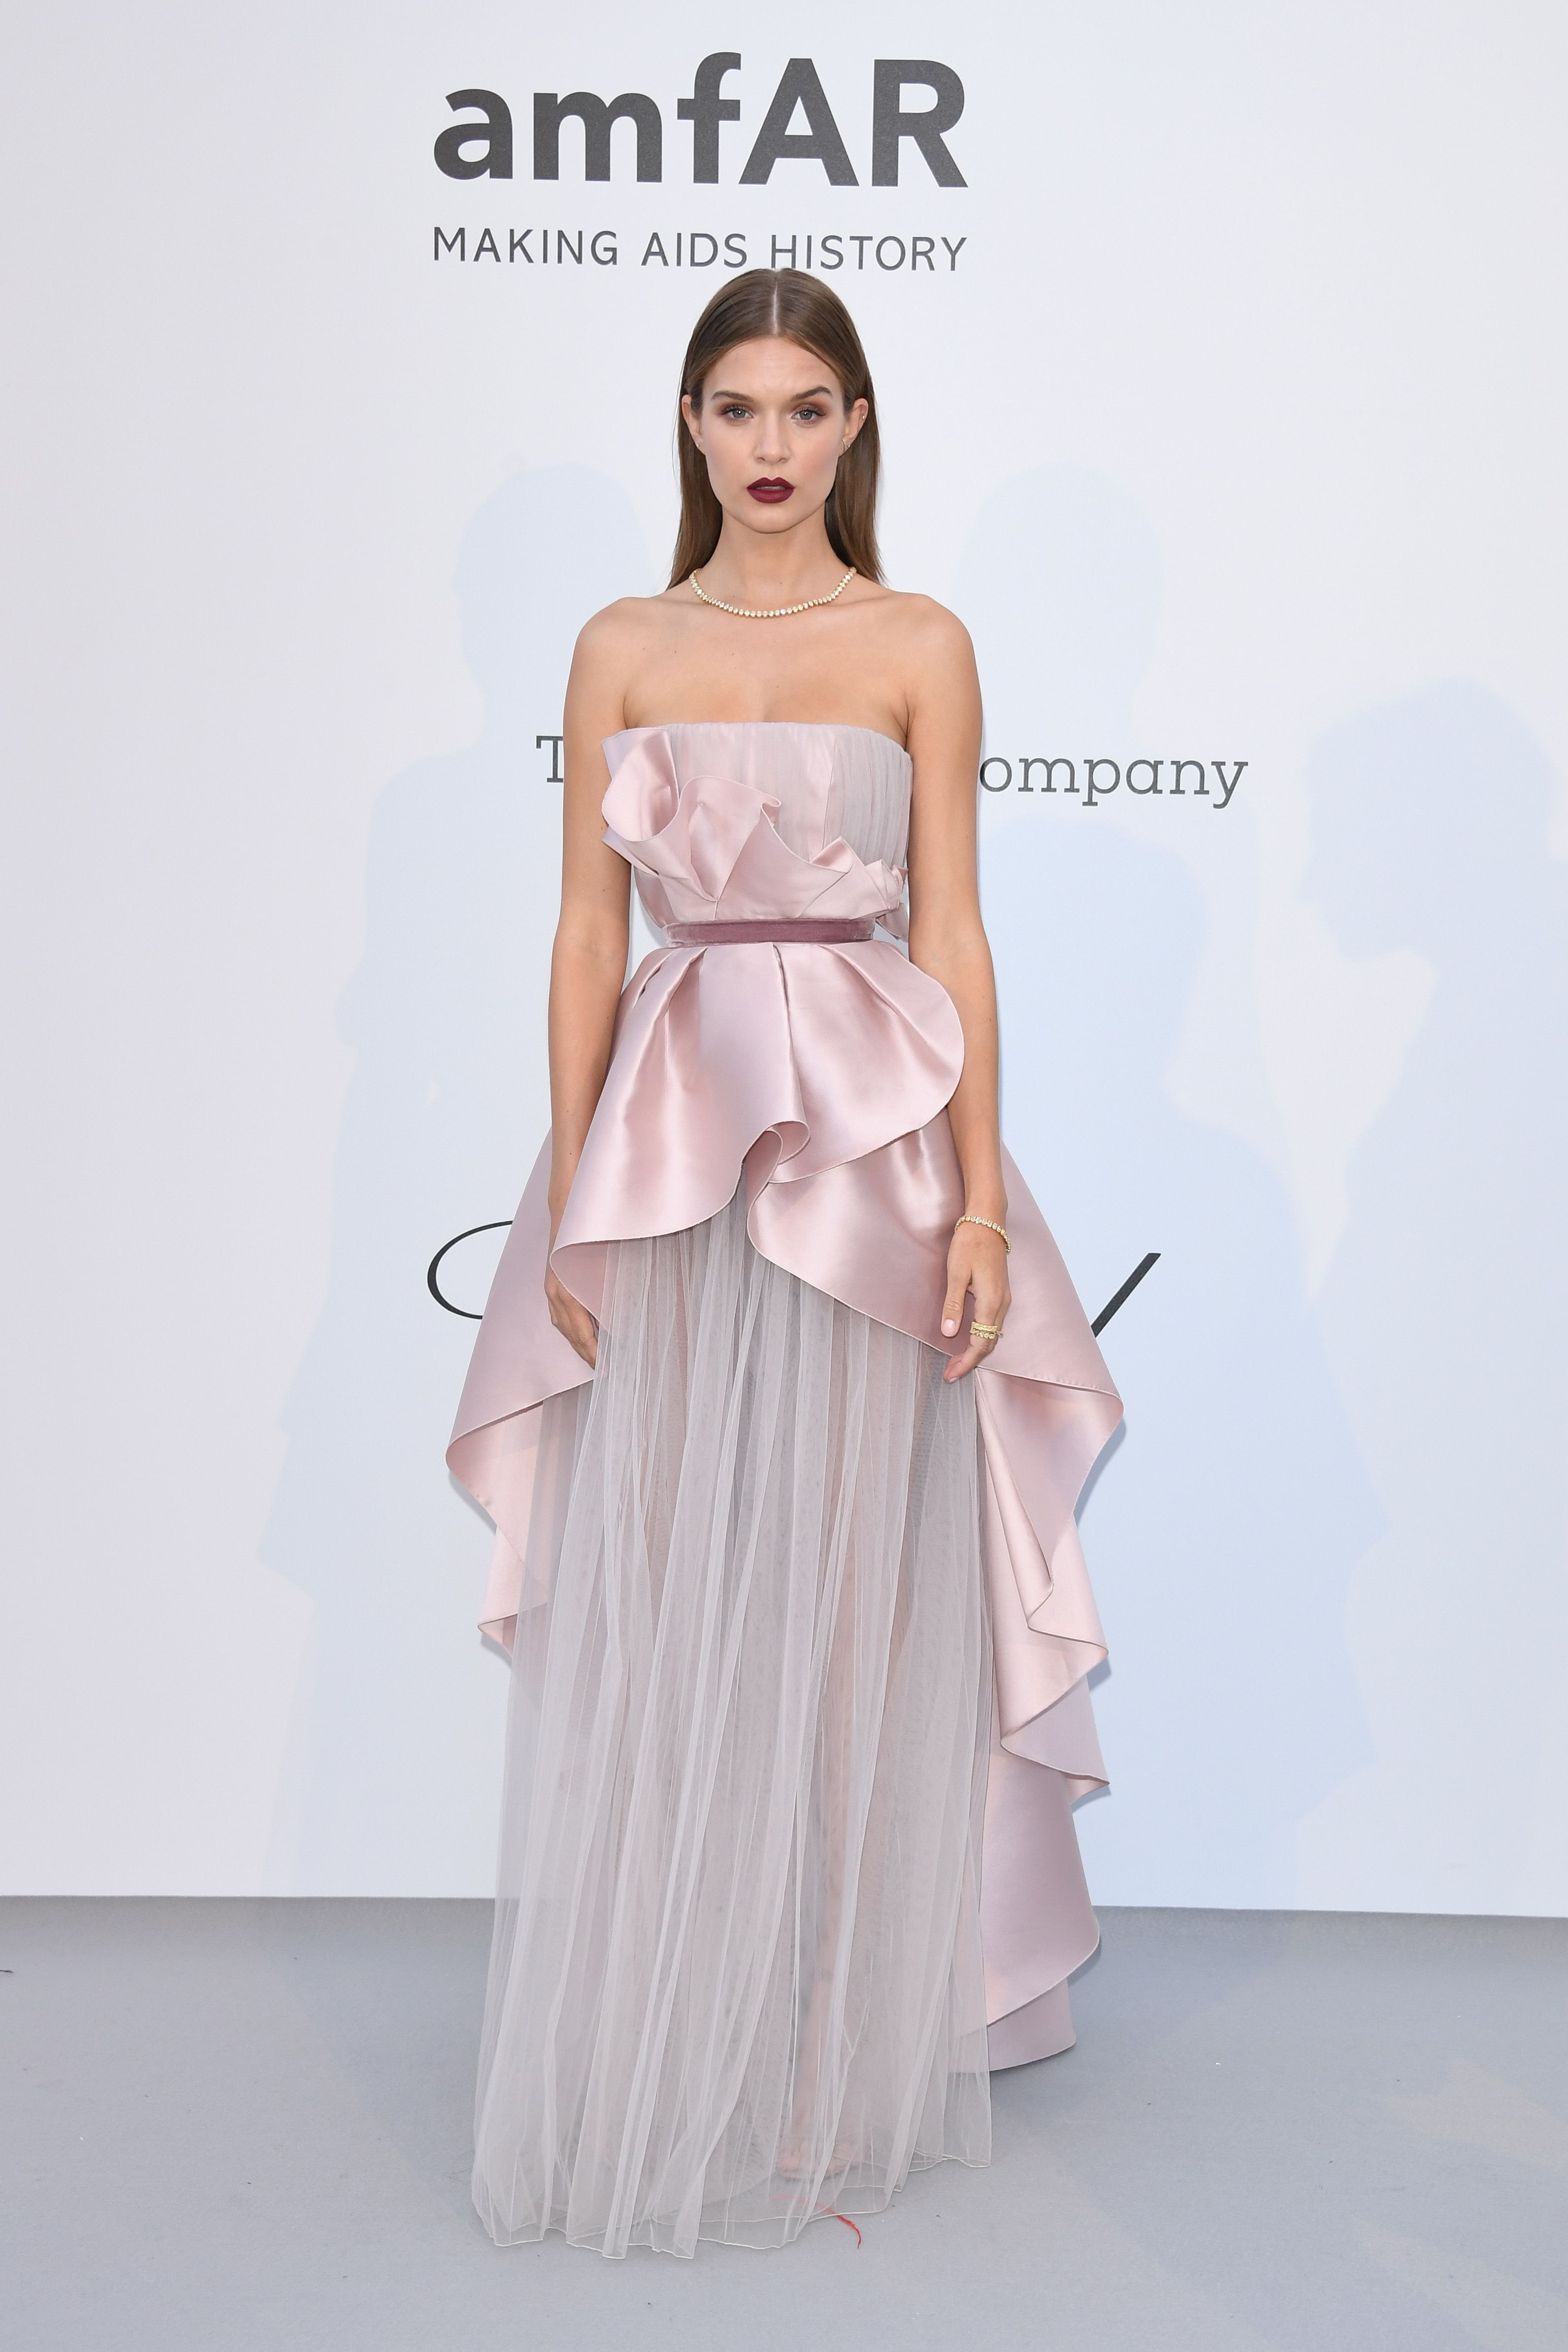 Josephine Skriver In a pale pink strapless gown.